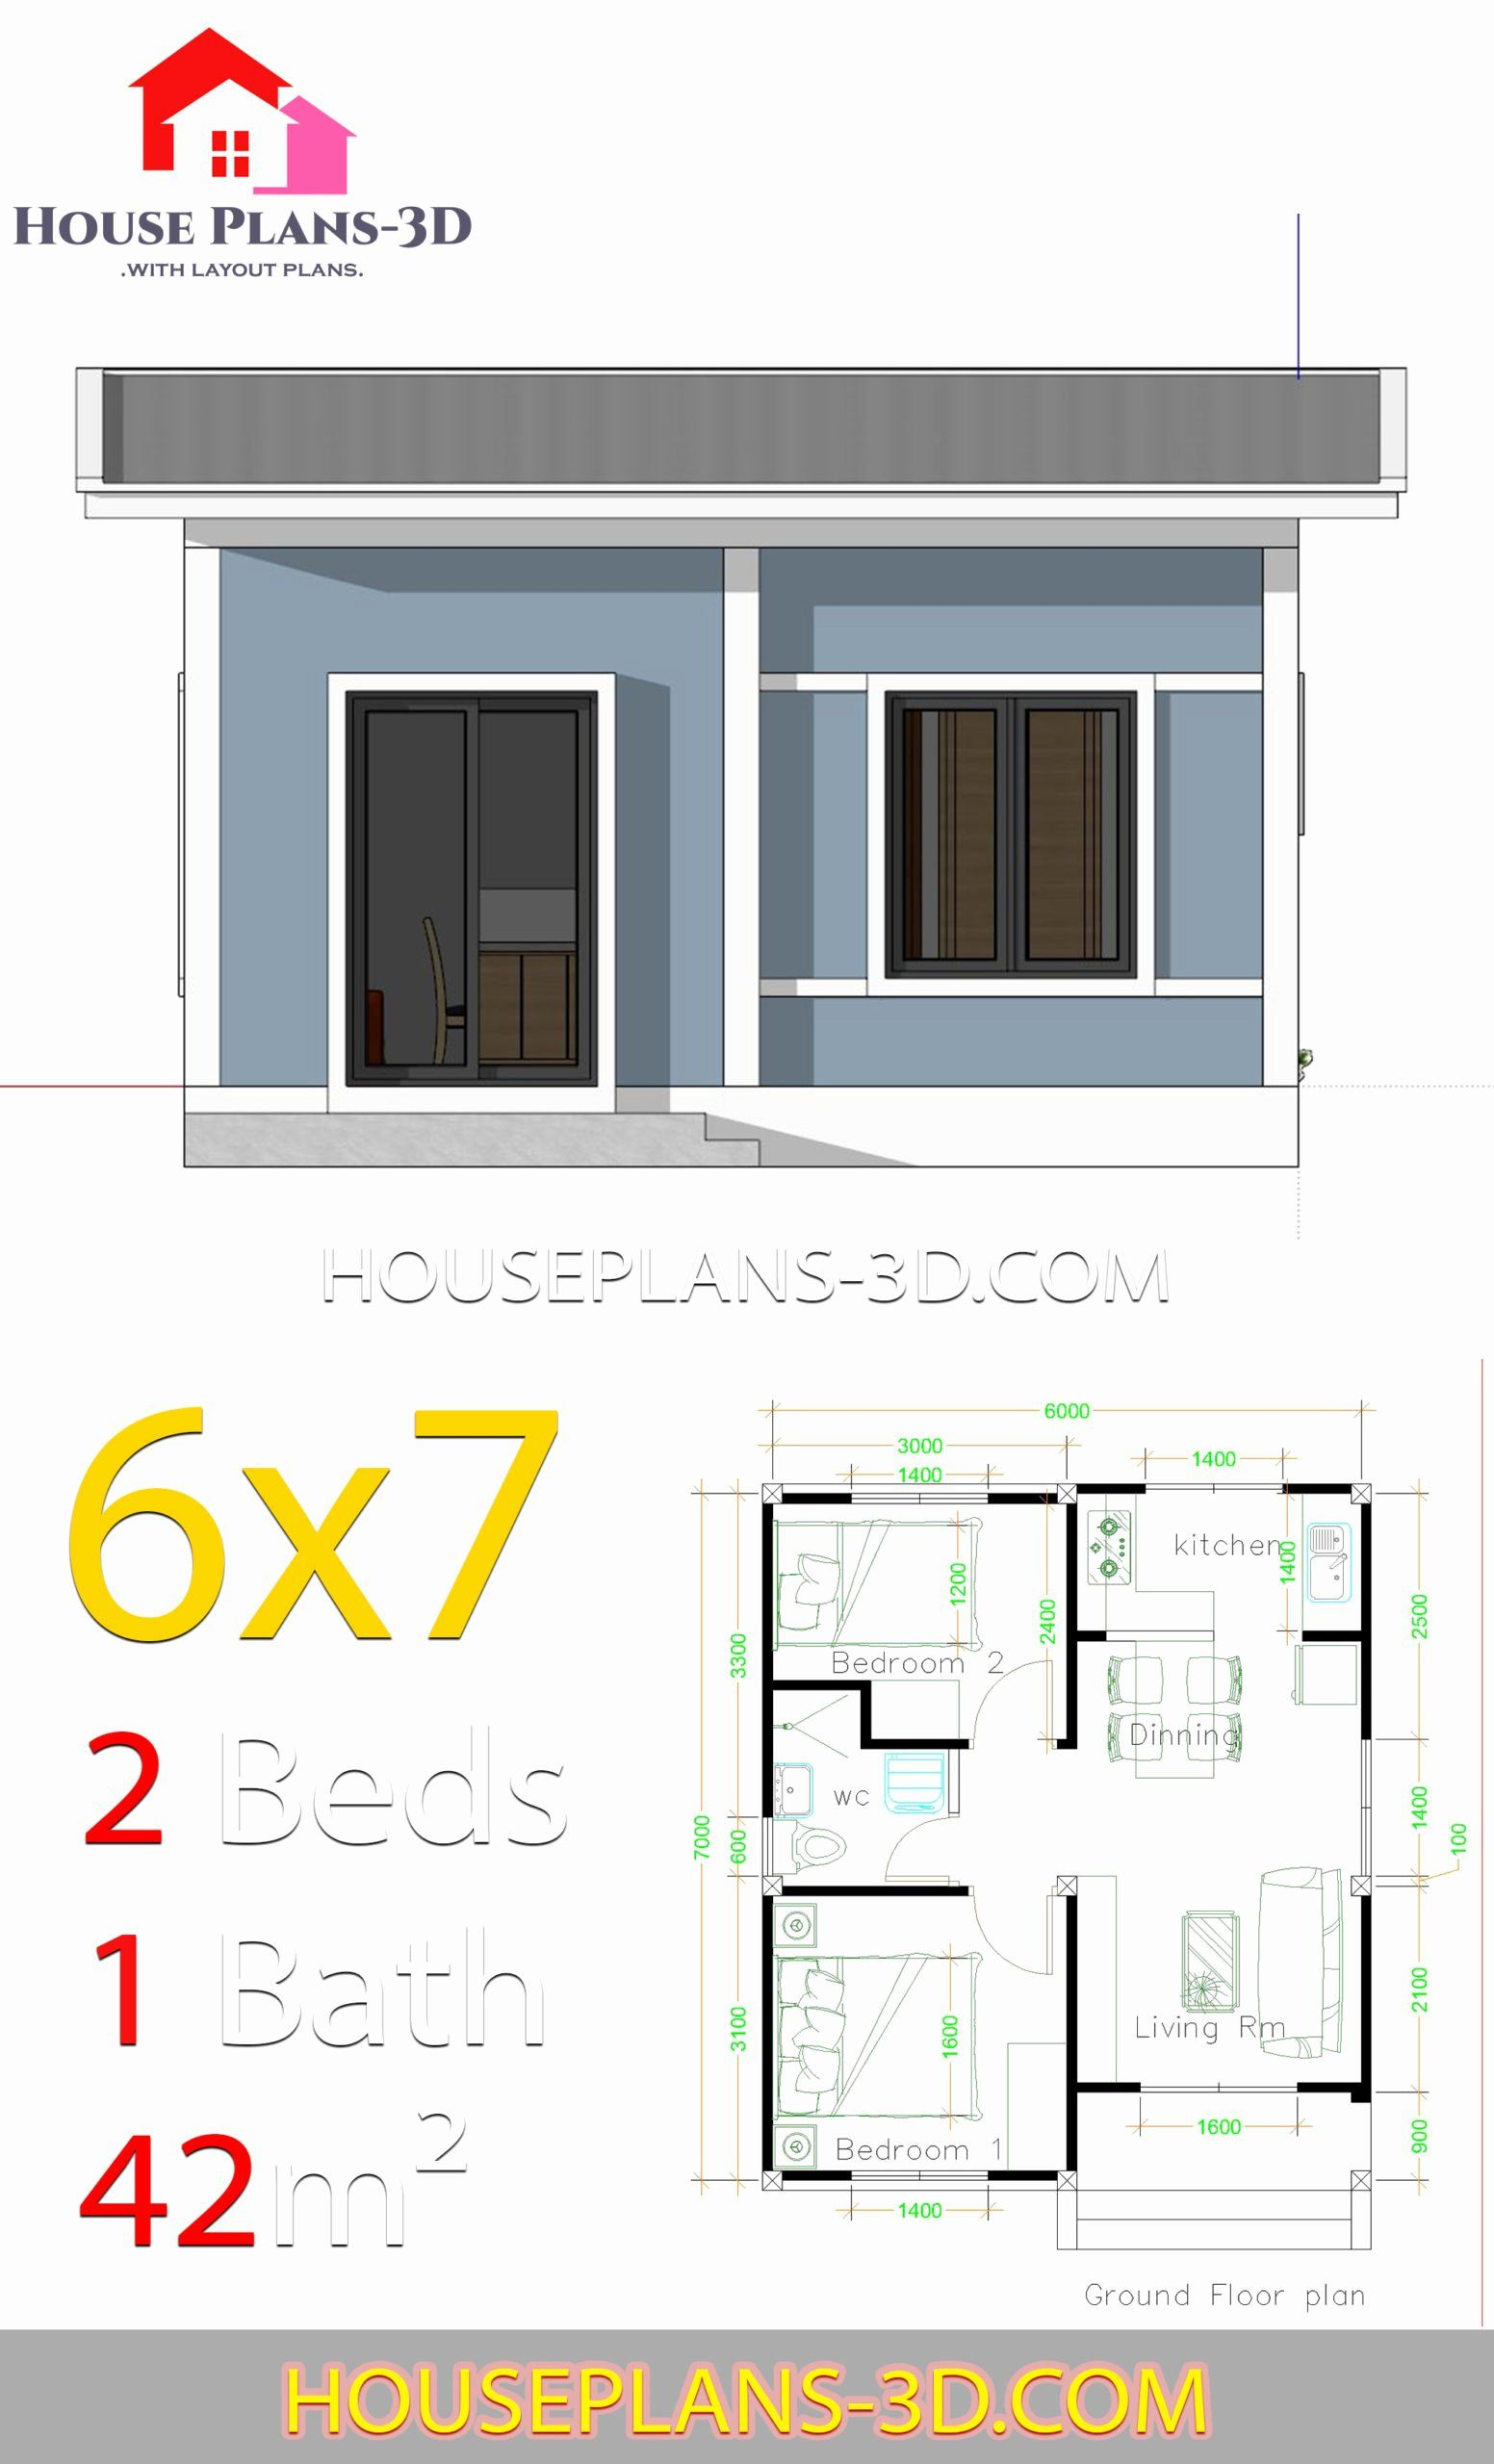 Basic House Plans Free Awesome Simple House Plans 6x7 With 2 Bedrooms Shed Roof Hous Diseno De Casas Sencillas Modelos De Casas Sencillas Diseno Casas Pequenas